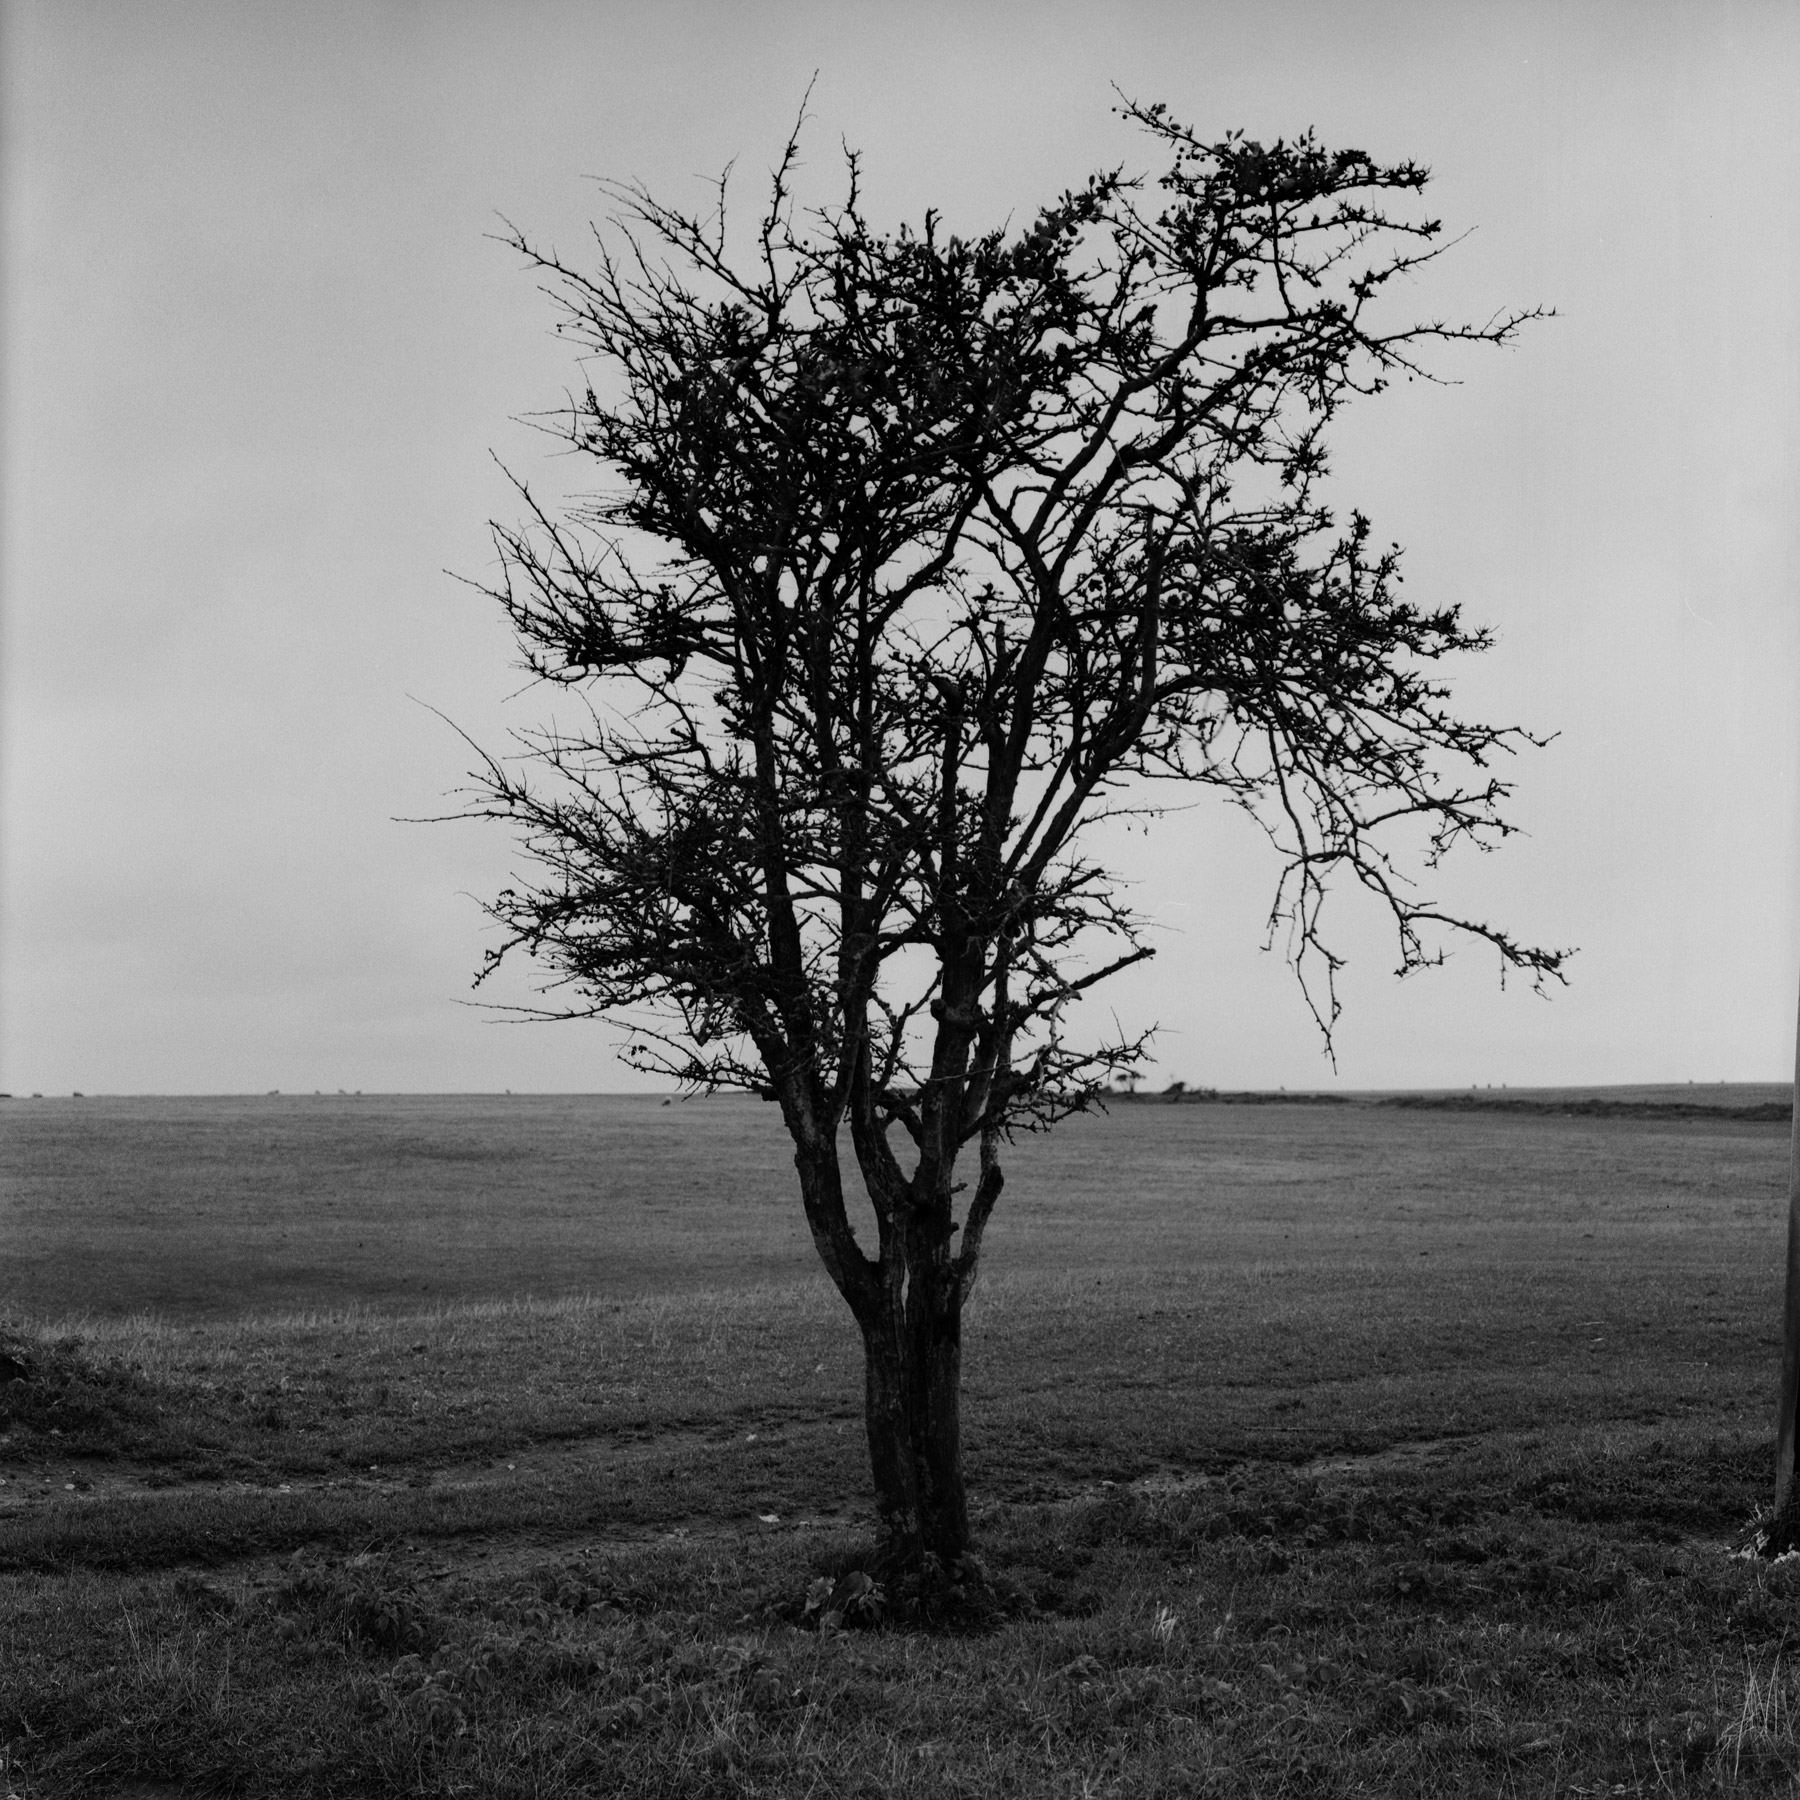 One Tree Hill, Image of a lonely tree taken on a country walk in Telscombe Village in the South East of England. Part of a wider Observations series. Using a Hasselblad 6x6 camera and Ilford FP4 125iso film. Hand developed in Ilfosol 3 chemicals in 2020. Black & White archival print using traditional darkroom chemical process. Using Ilford Multigrade RC Deluxe satin paper. 10x8in print (20.3cm x 25.4cm) Medium weight 190 Limited edition print £100 GBP